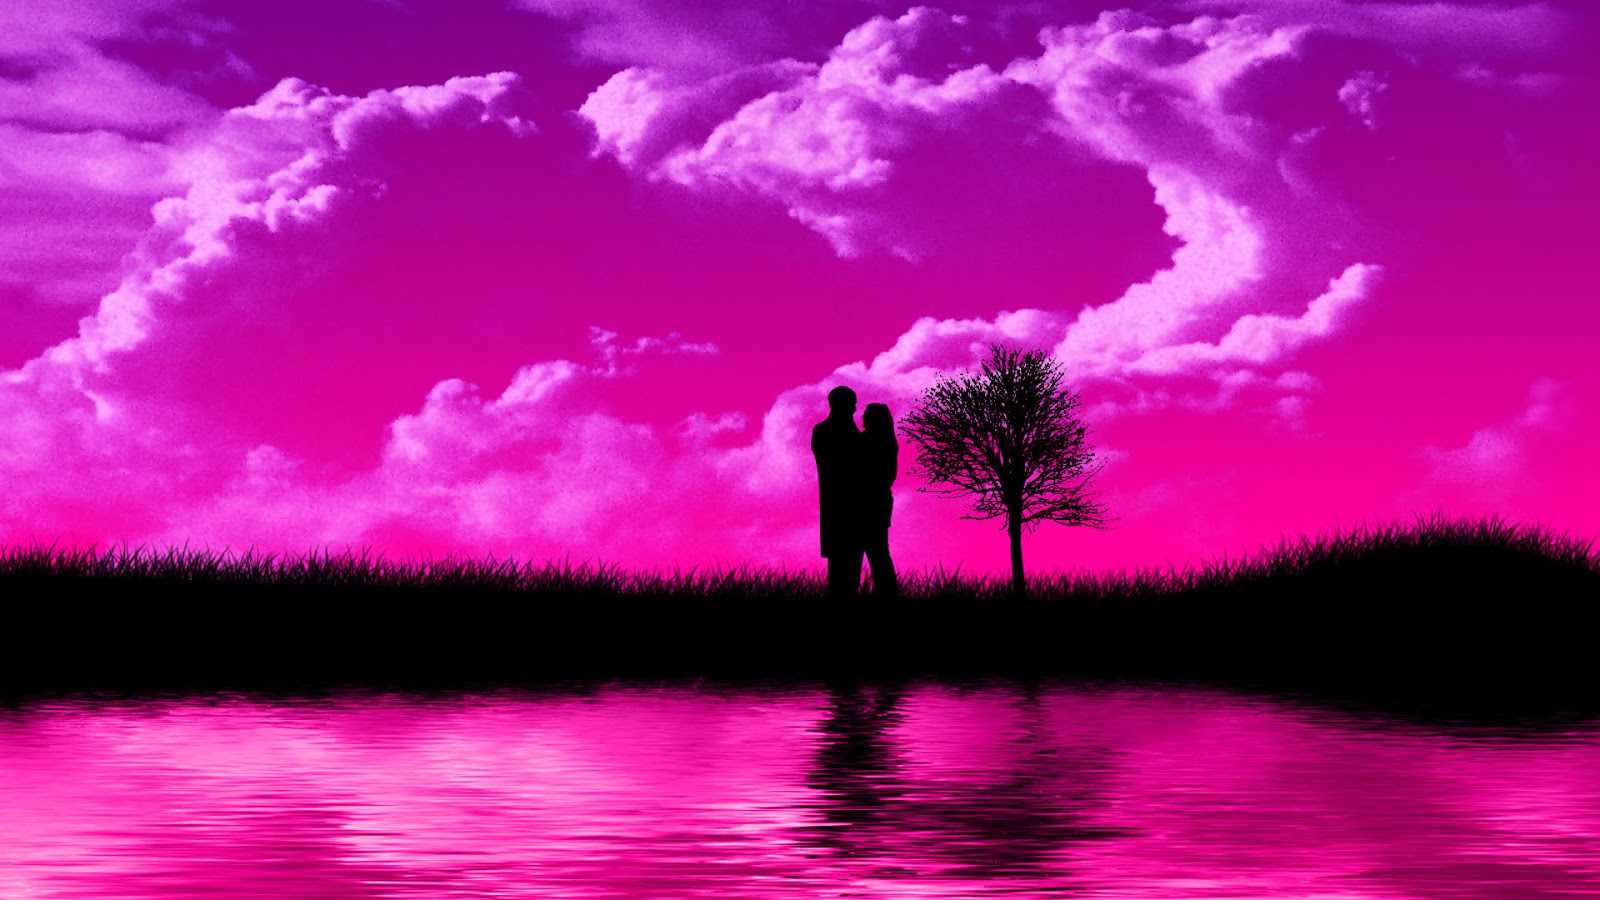 Love-pictures-pink-background-images-HD-photos.jpg